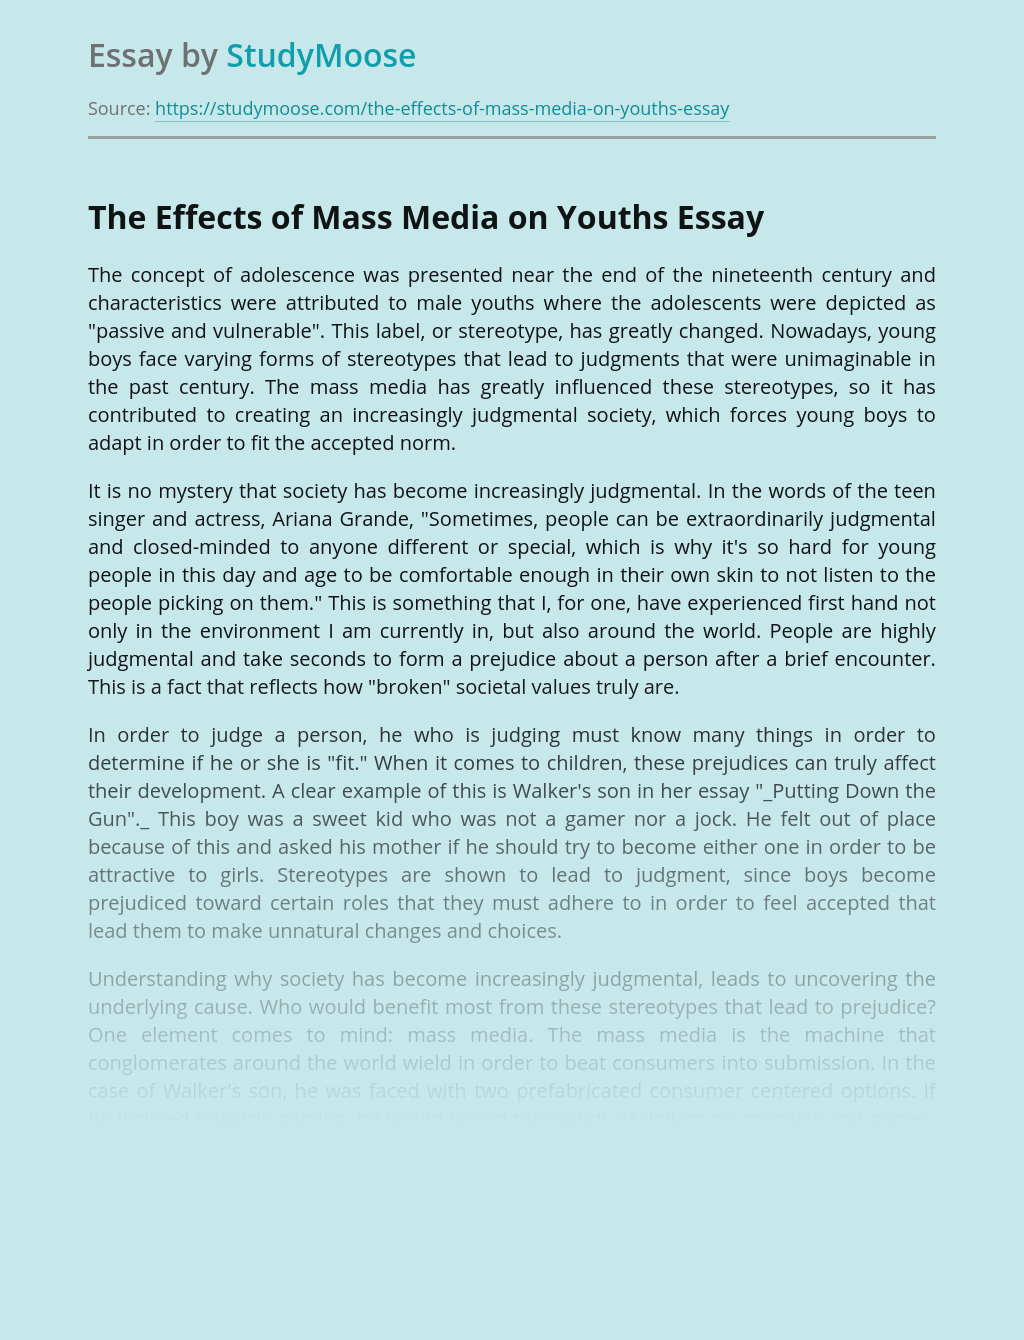 The Effects of Mass Media on Youths